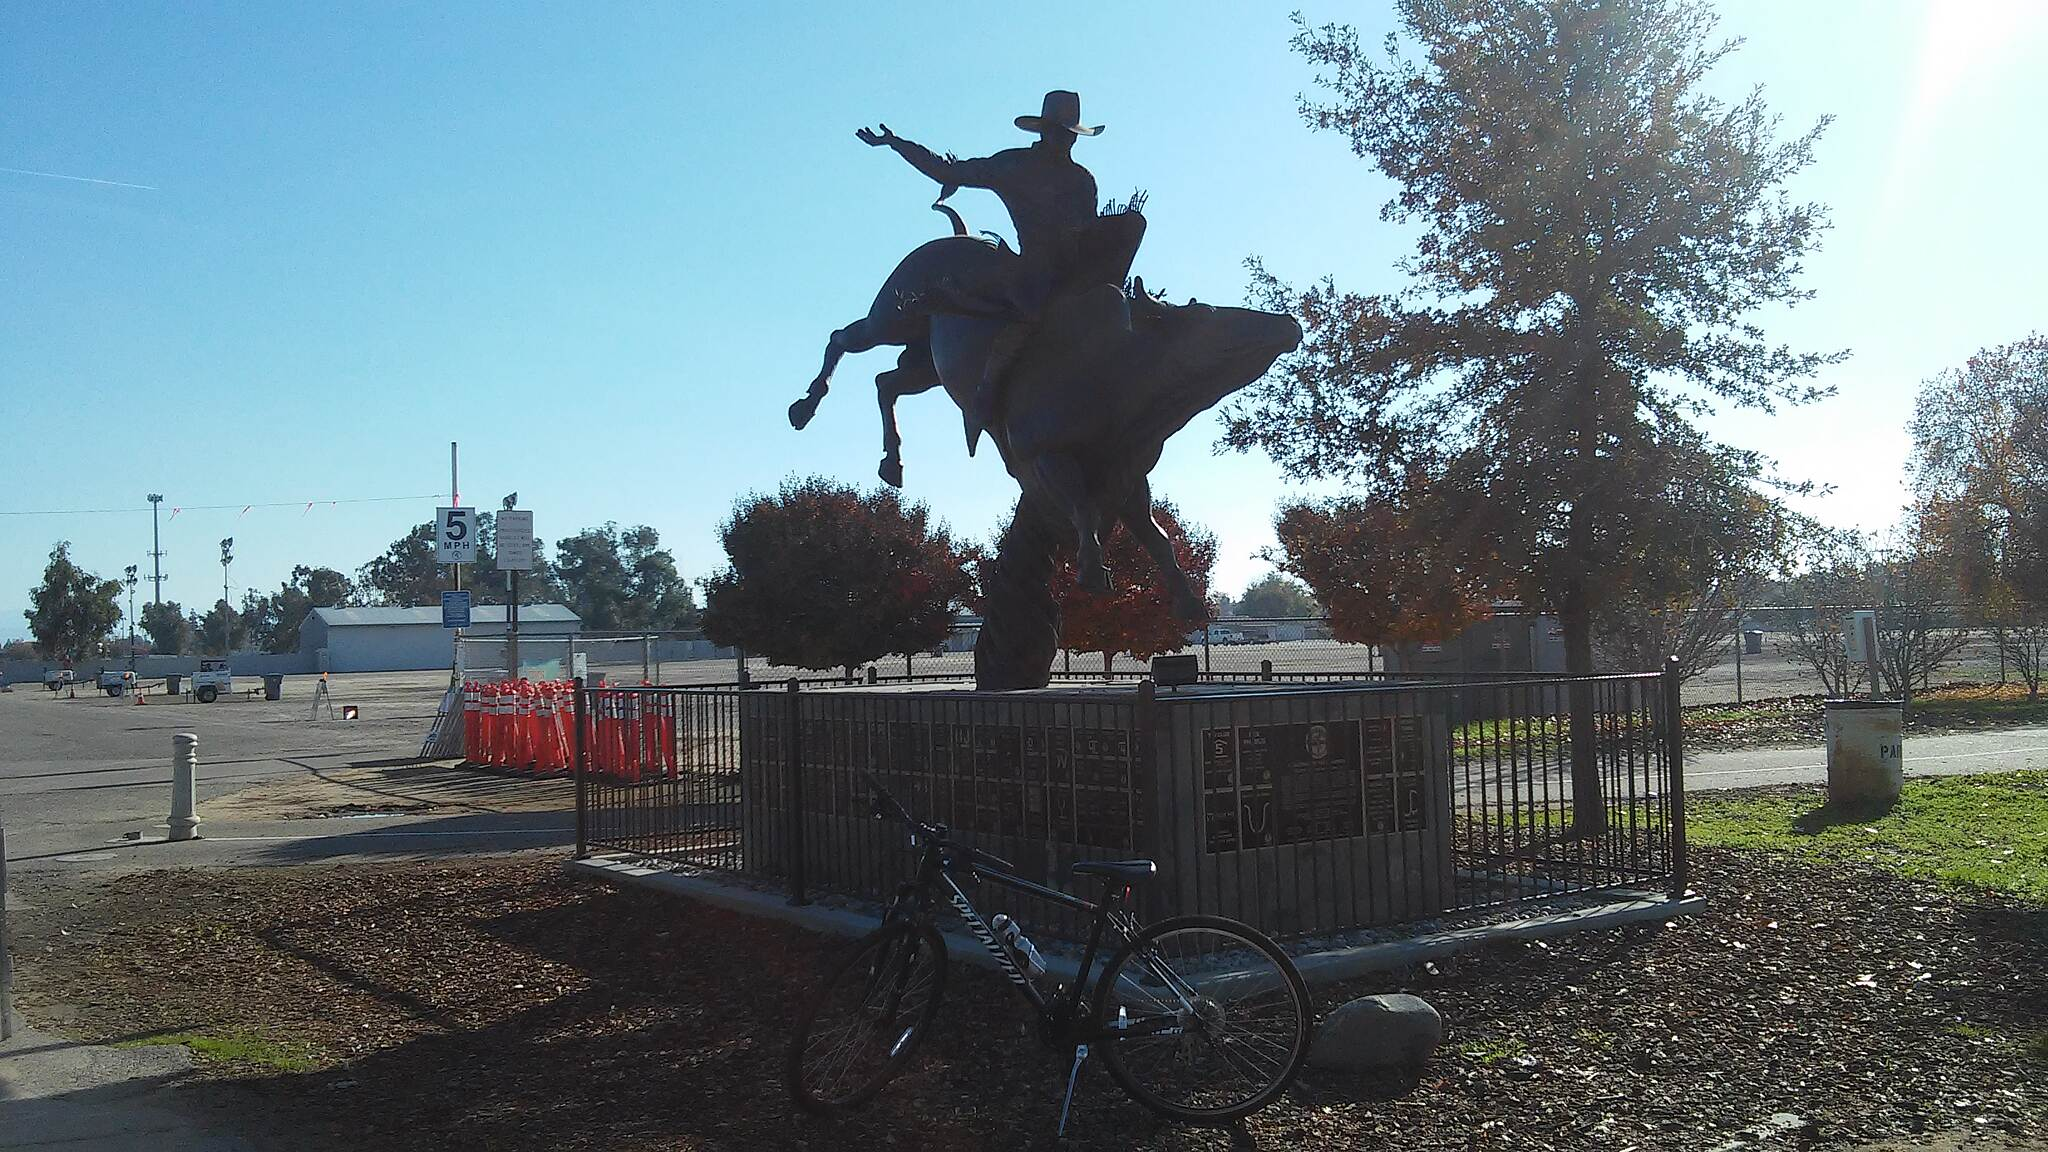 Clovis Old Town Trail clovis rodeo grounds lots of history statue and plaque along  the trail